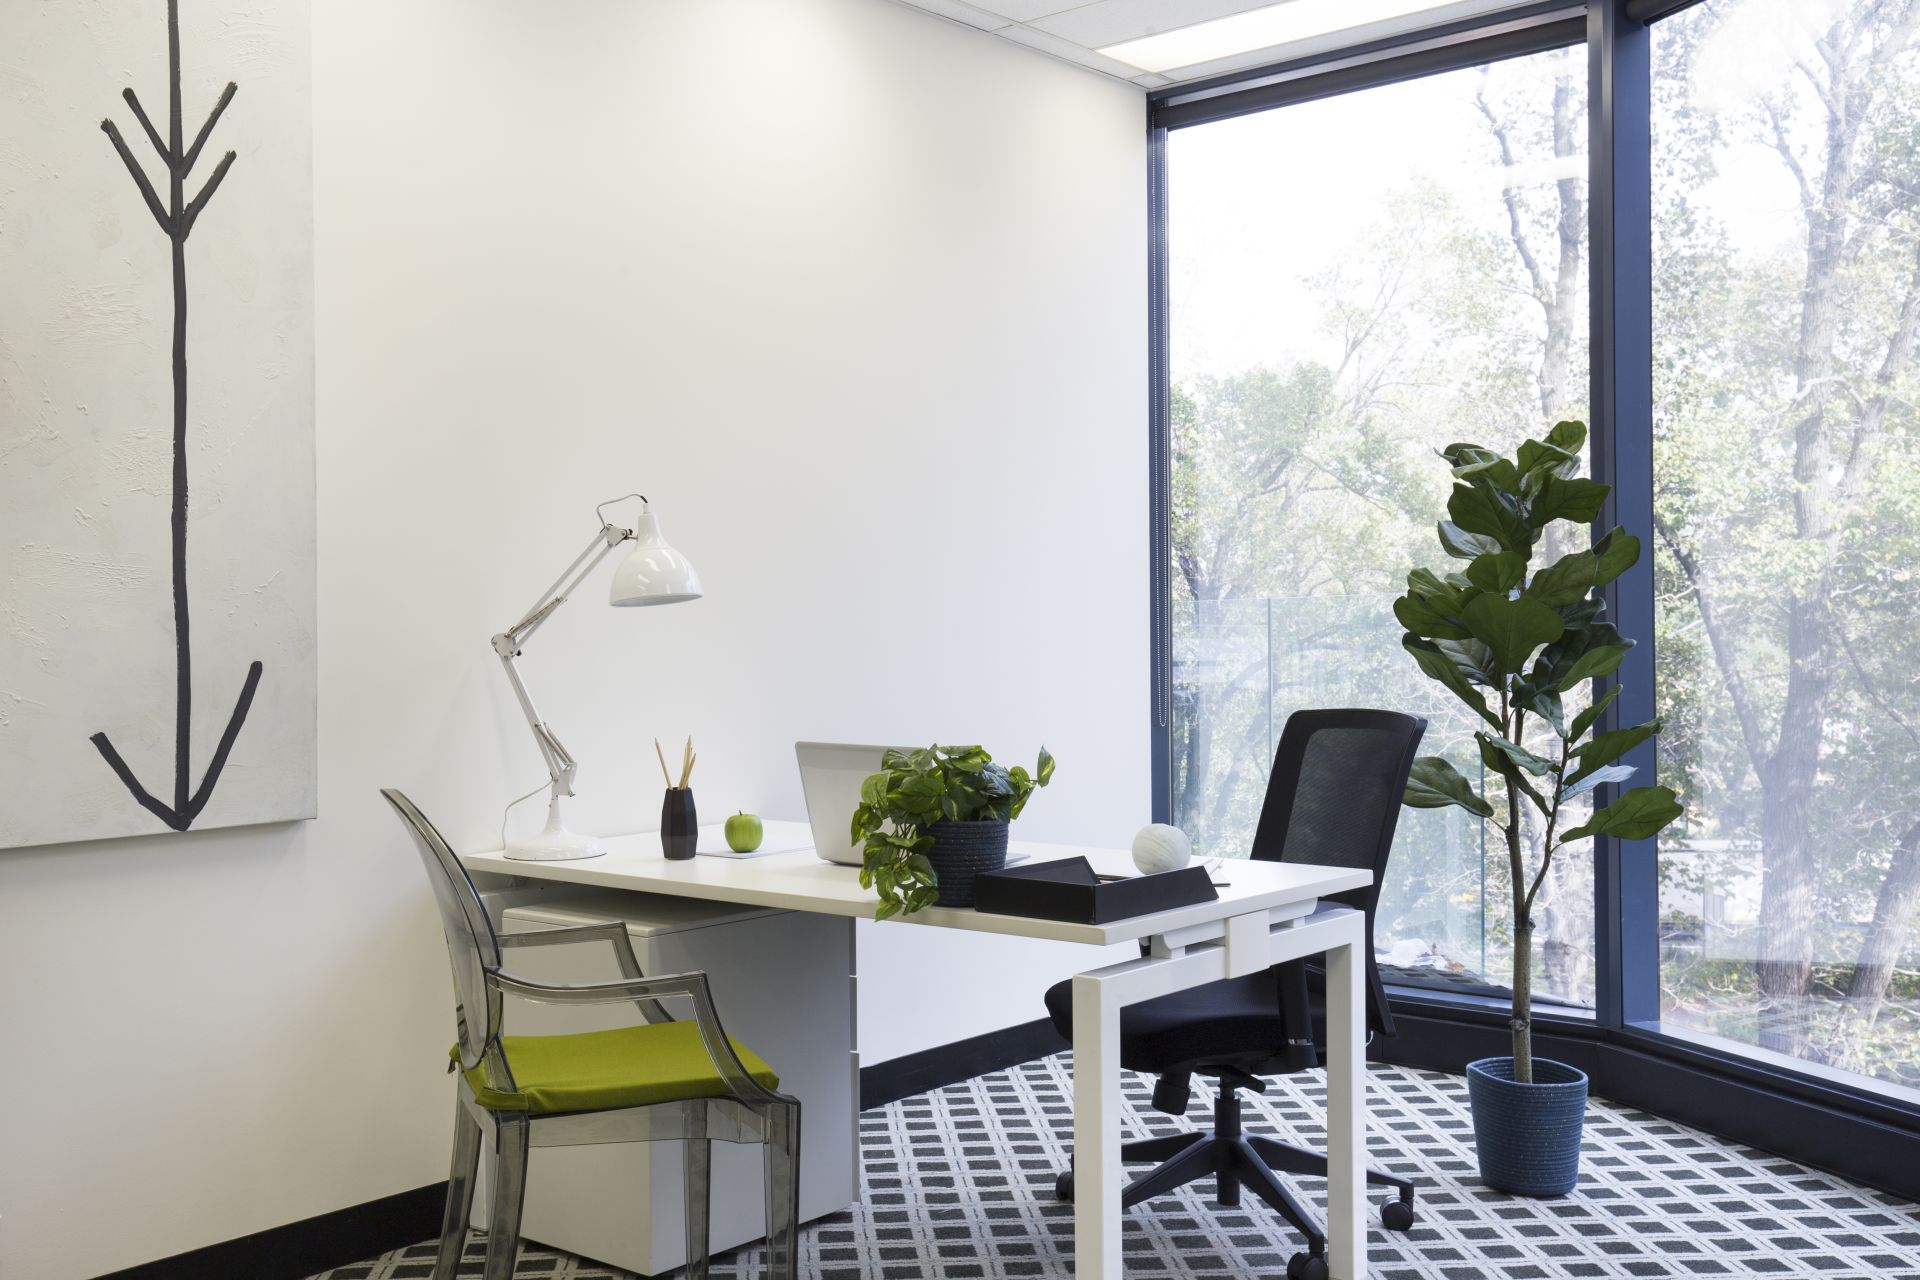 Immaculate purchasing opportunity for Owner Occupier in iconic St Kilda Rd Towers